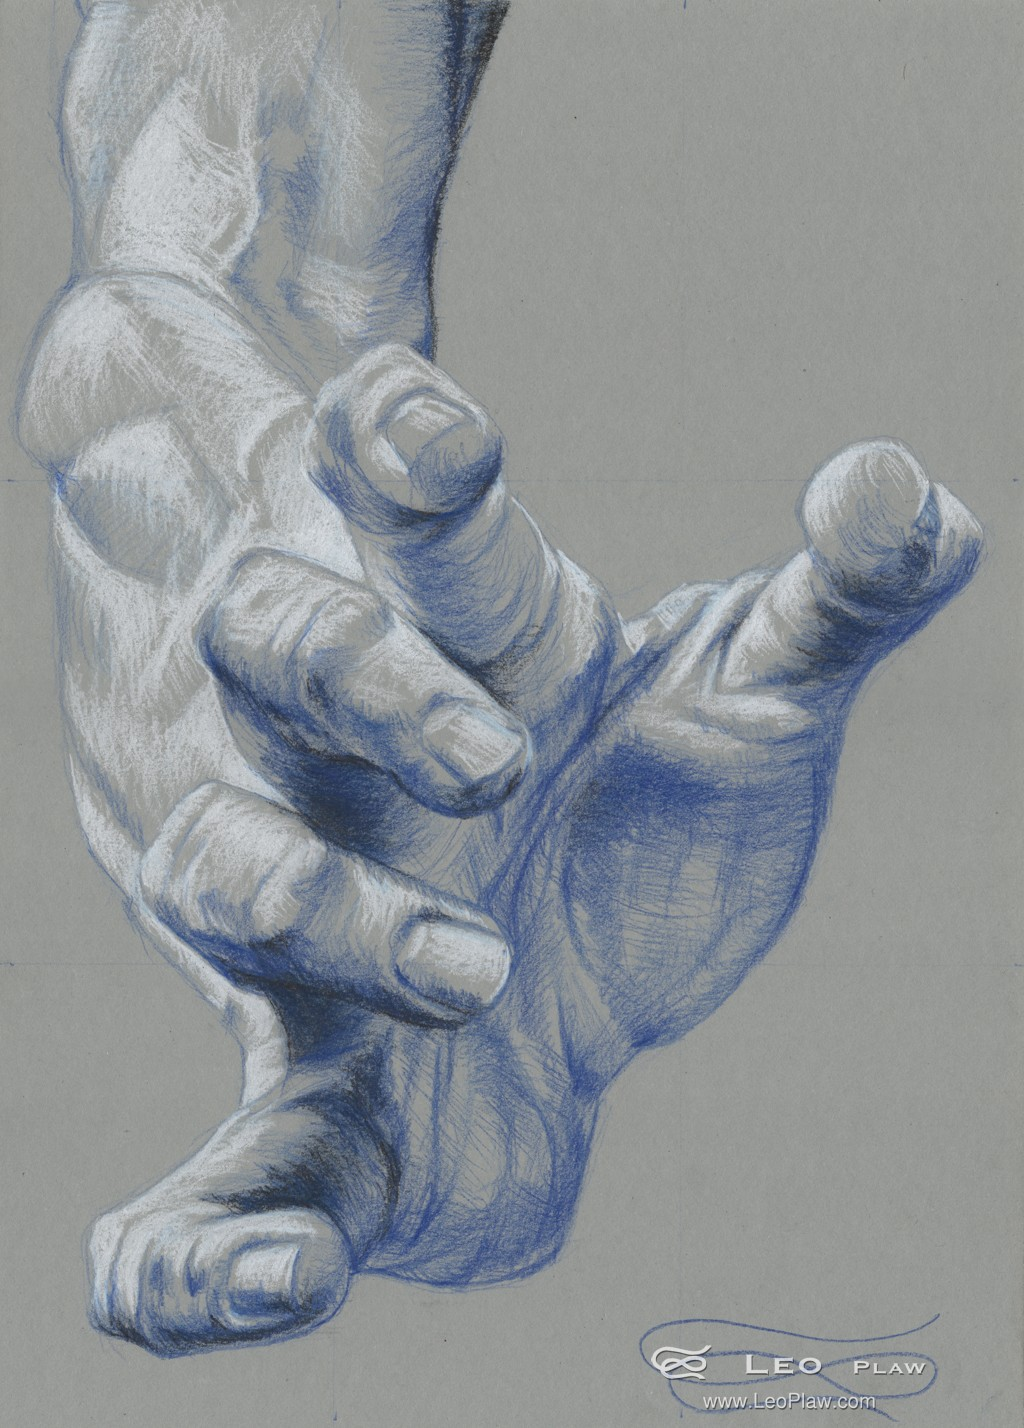 """Hand Study 14"", Leo Plaw, 24 x 34cm, pencil on paper"